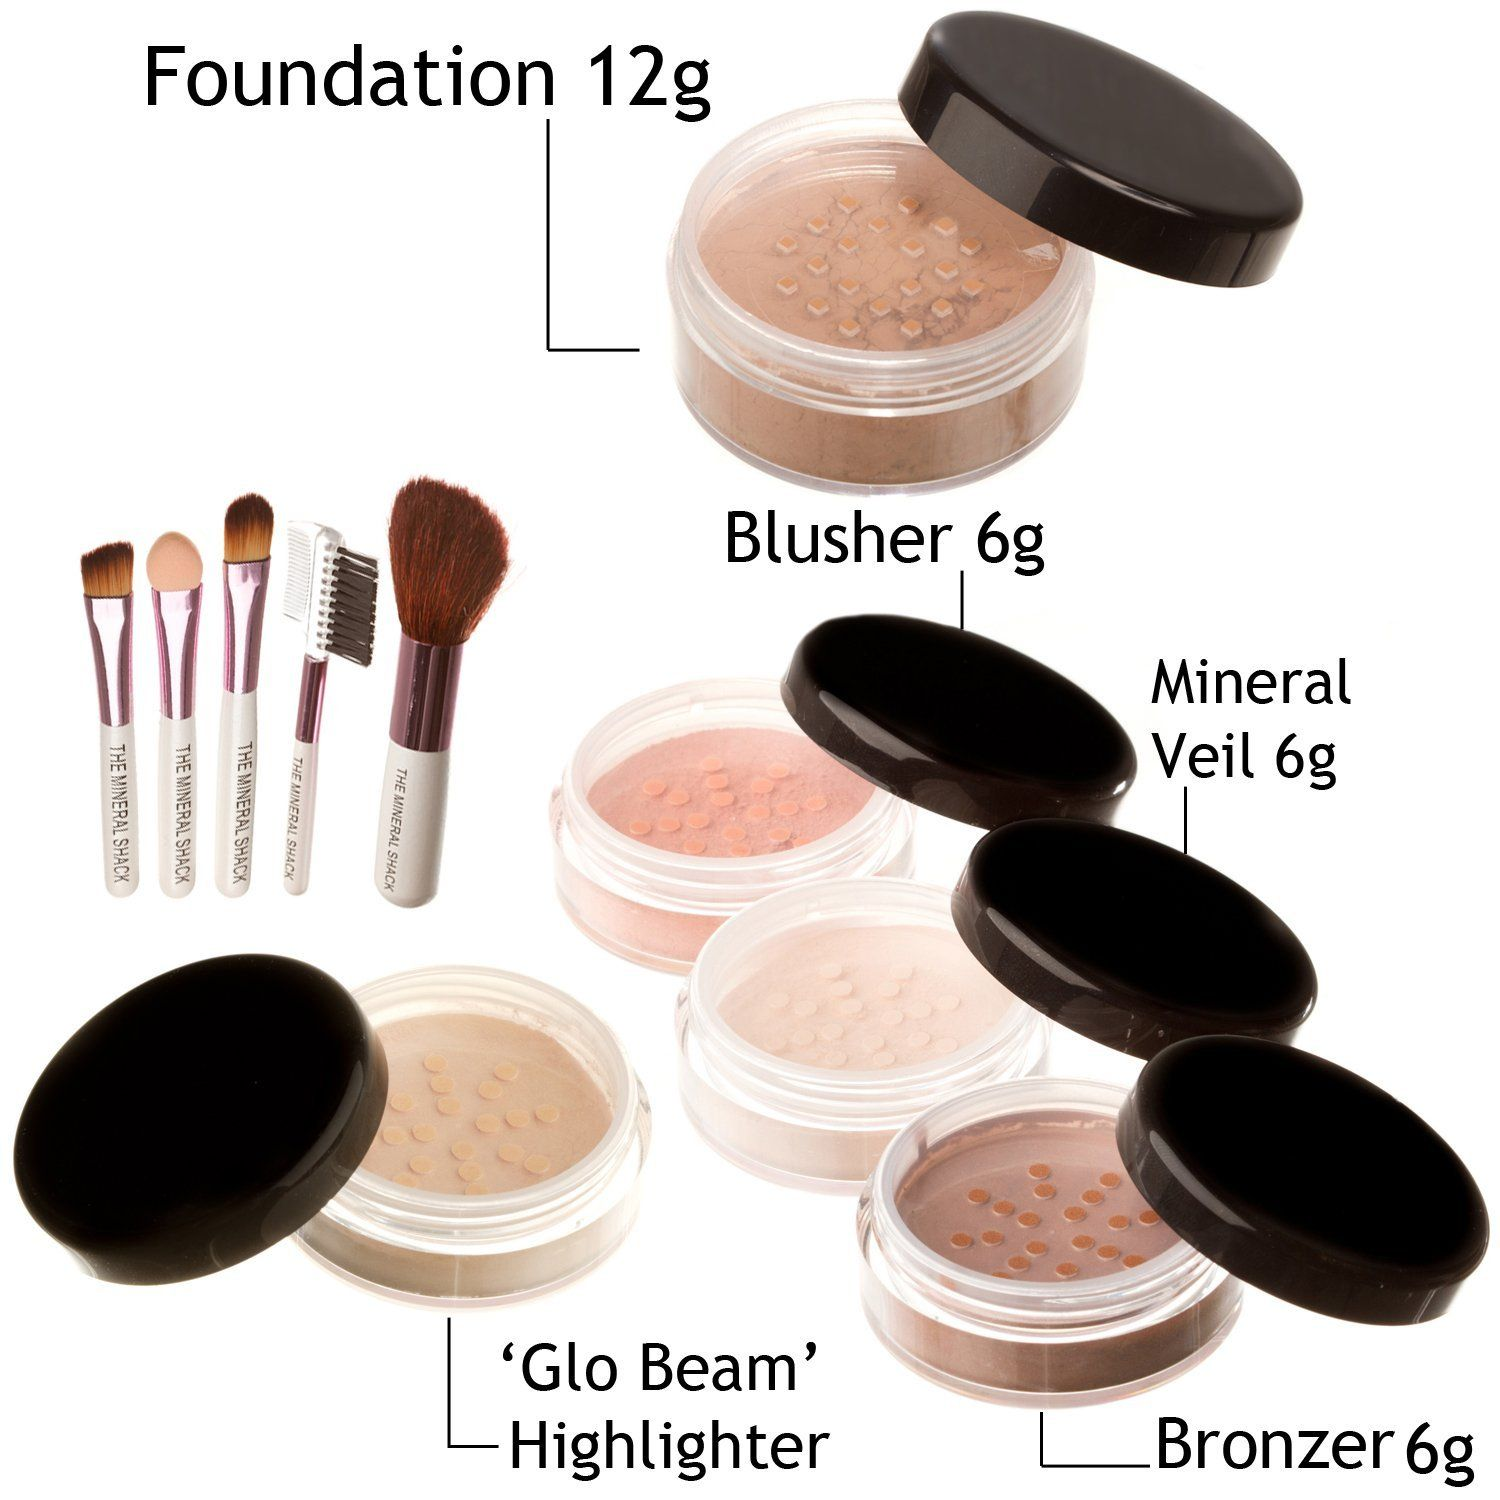 Best Free Sample Make Up Products Request Legit Cosmetics Online By Mail No Surveys No Rev Paraben Free Makeup Free Makeup Samples Mineral Makeup Foundation